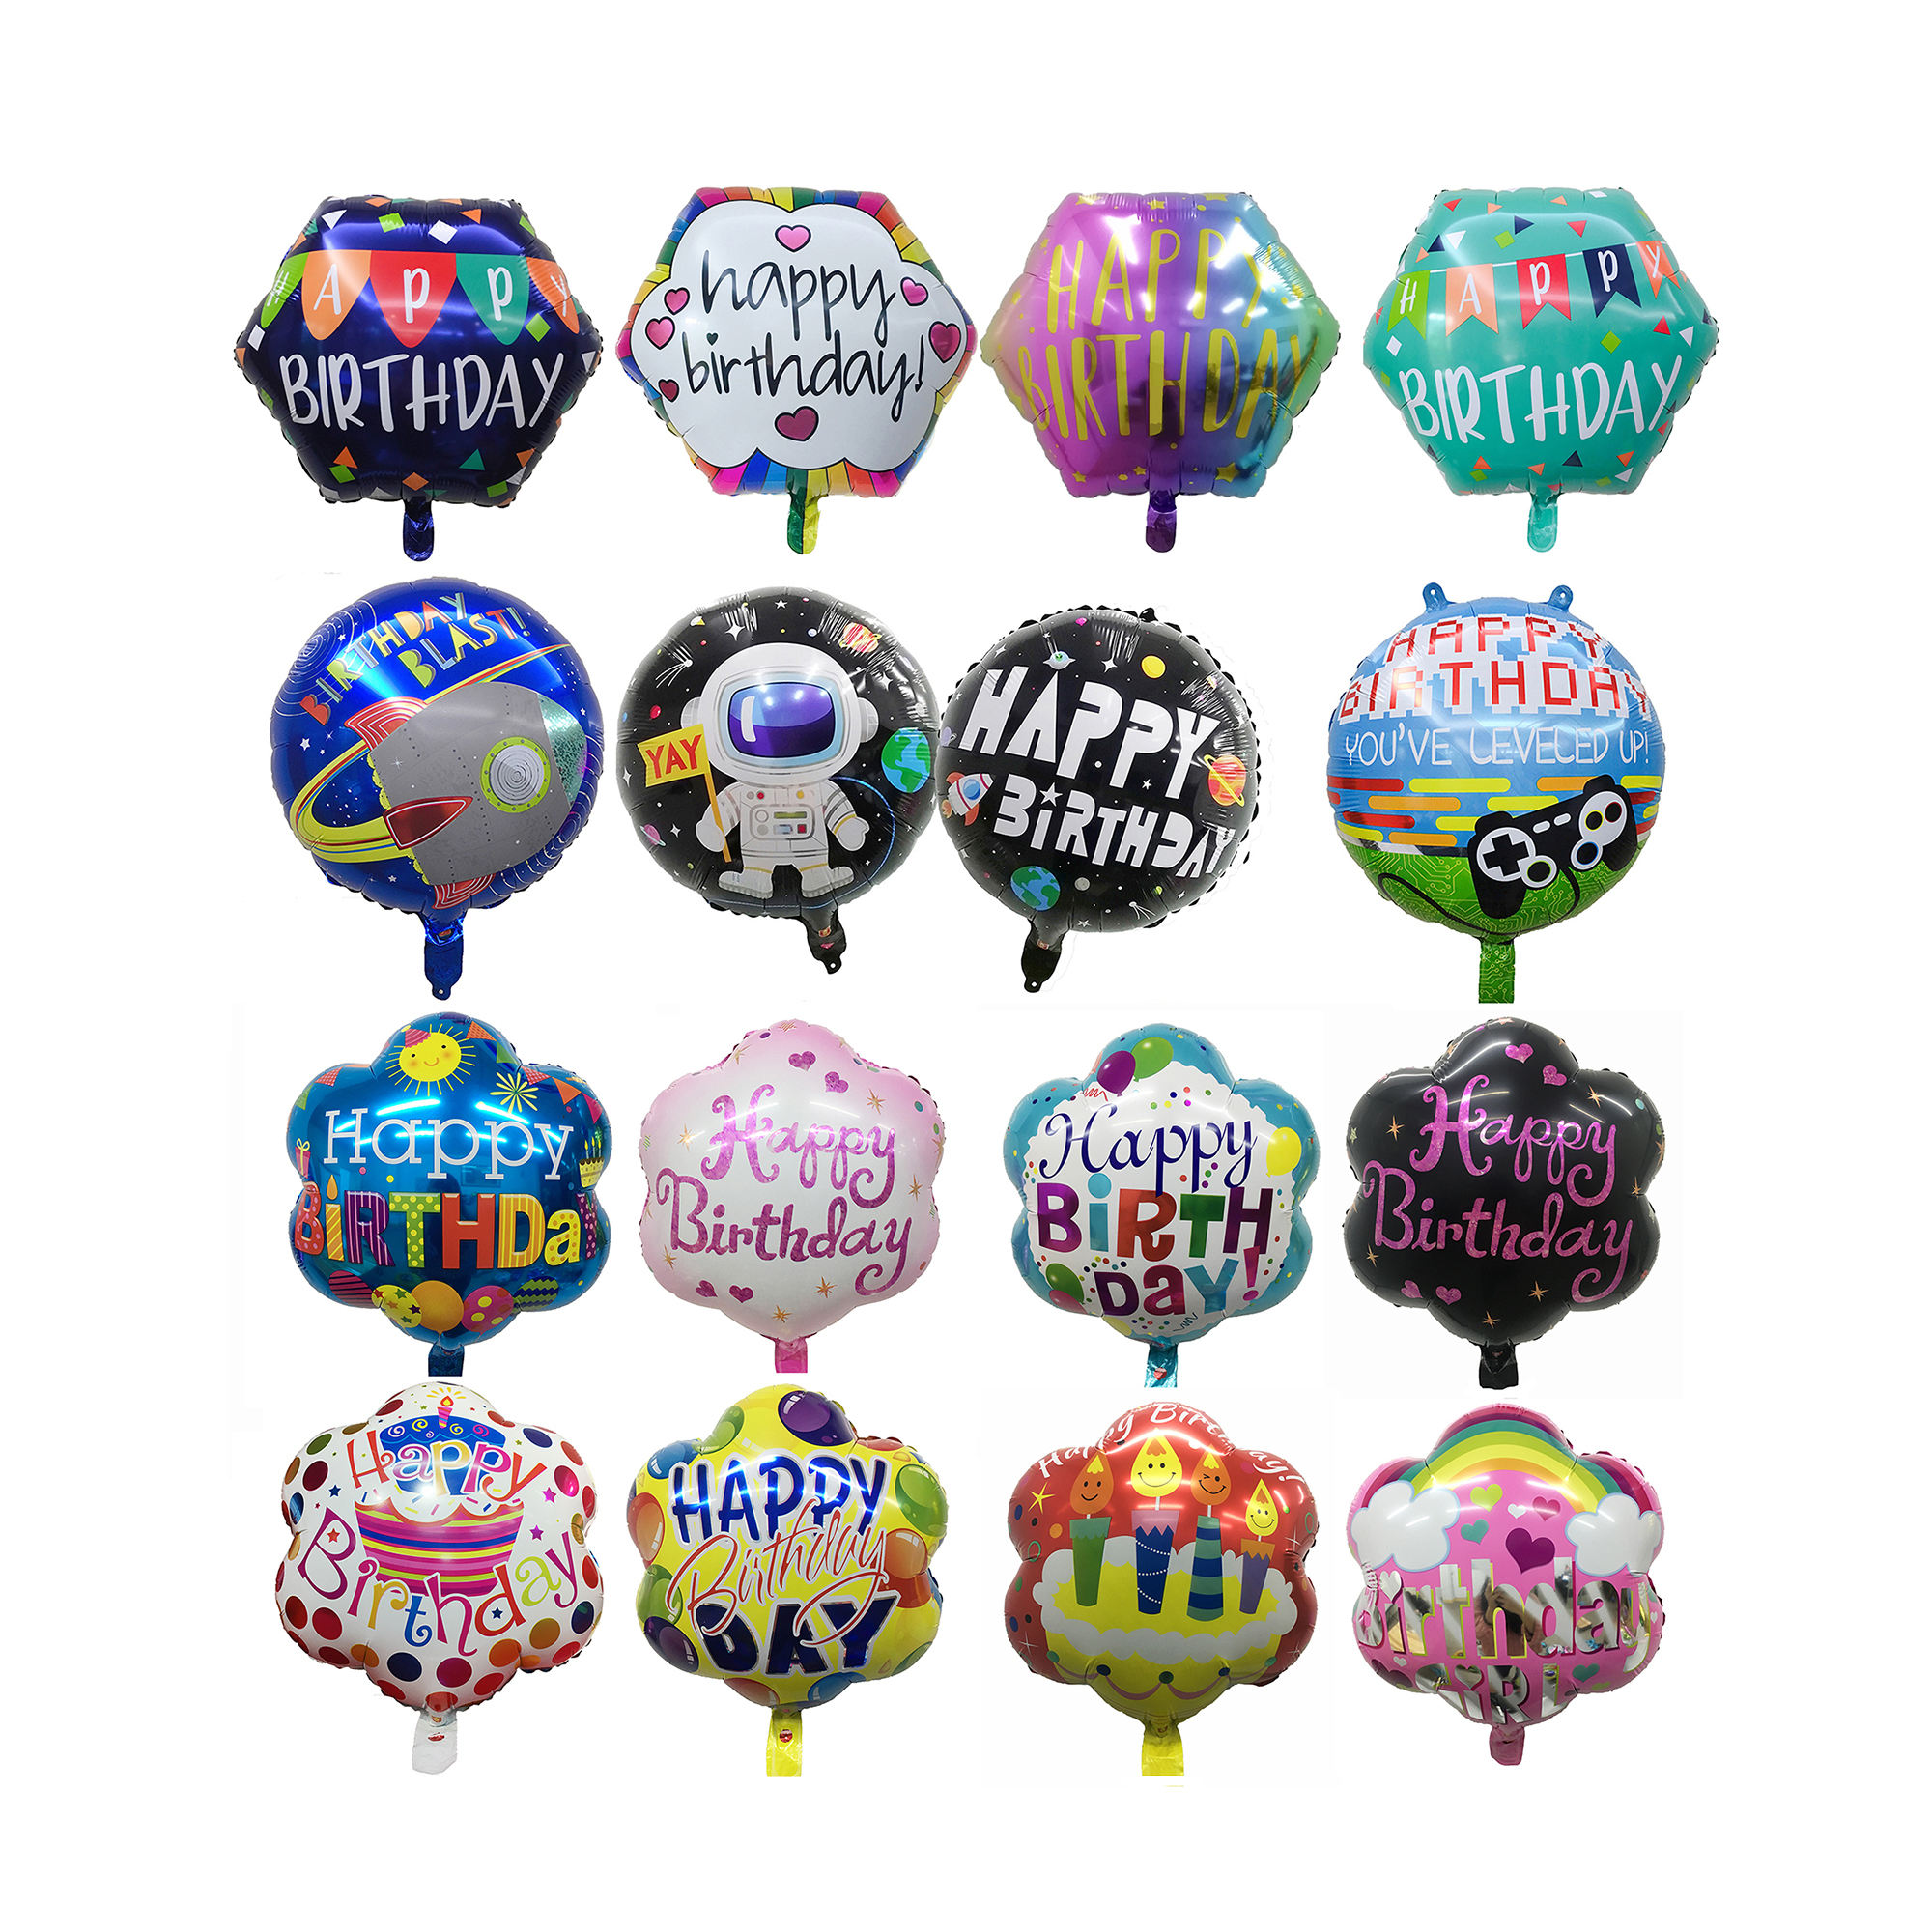 For Balloon Adult Men Women Happy Party Decorations Decals Walls Birthday Ballons